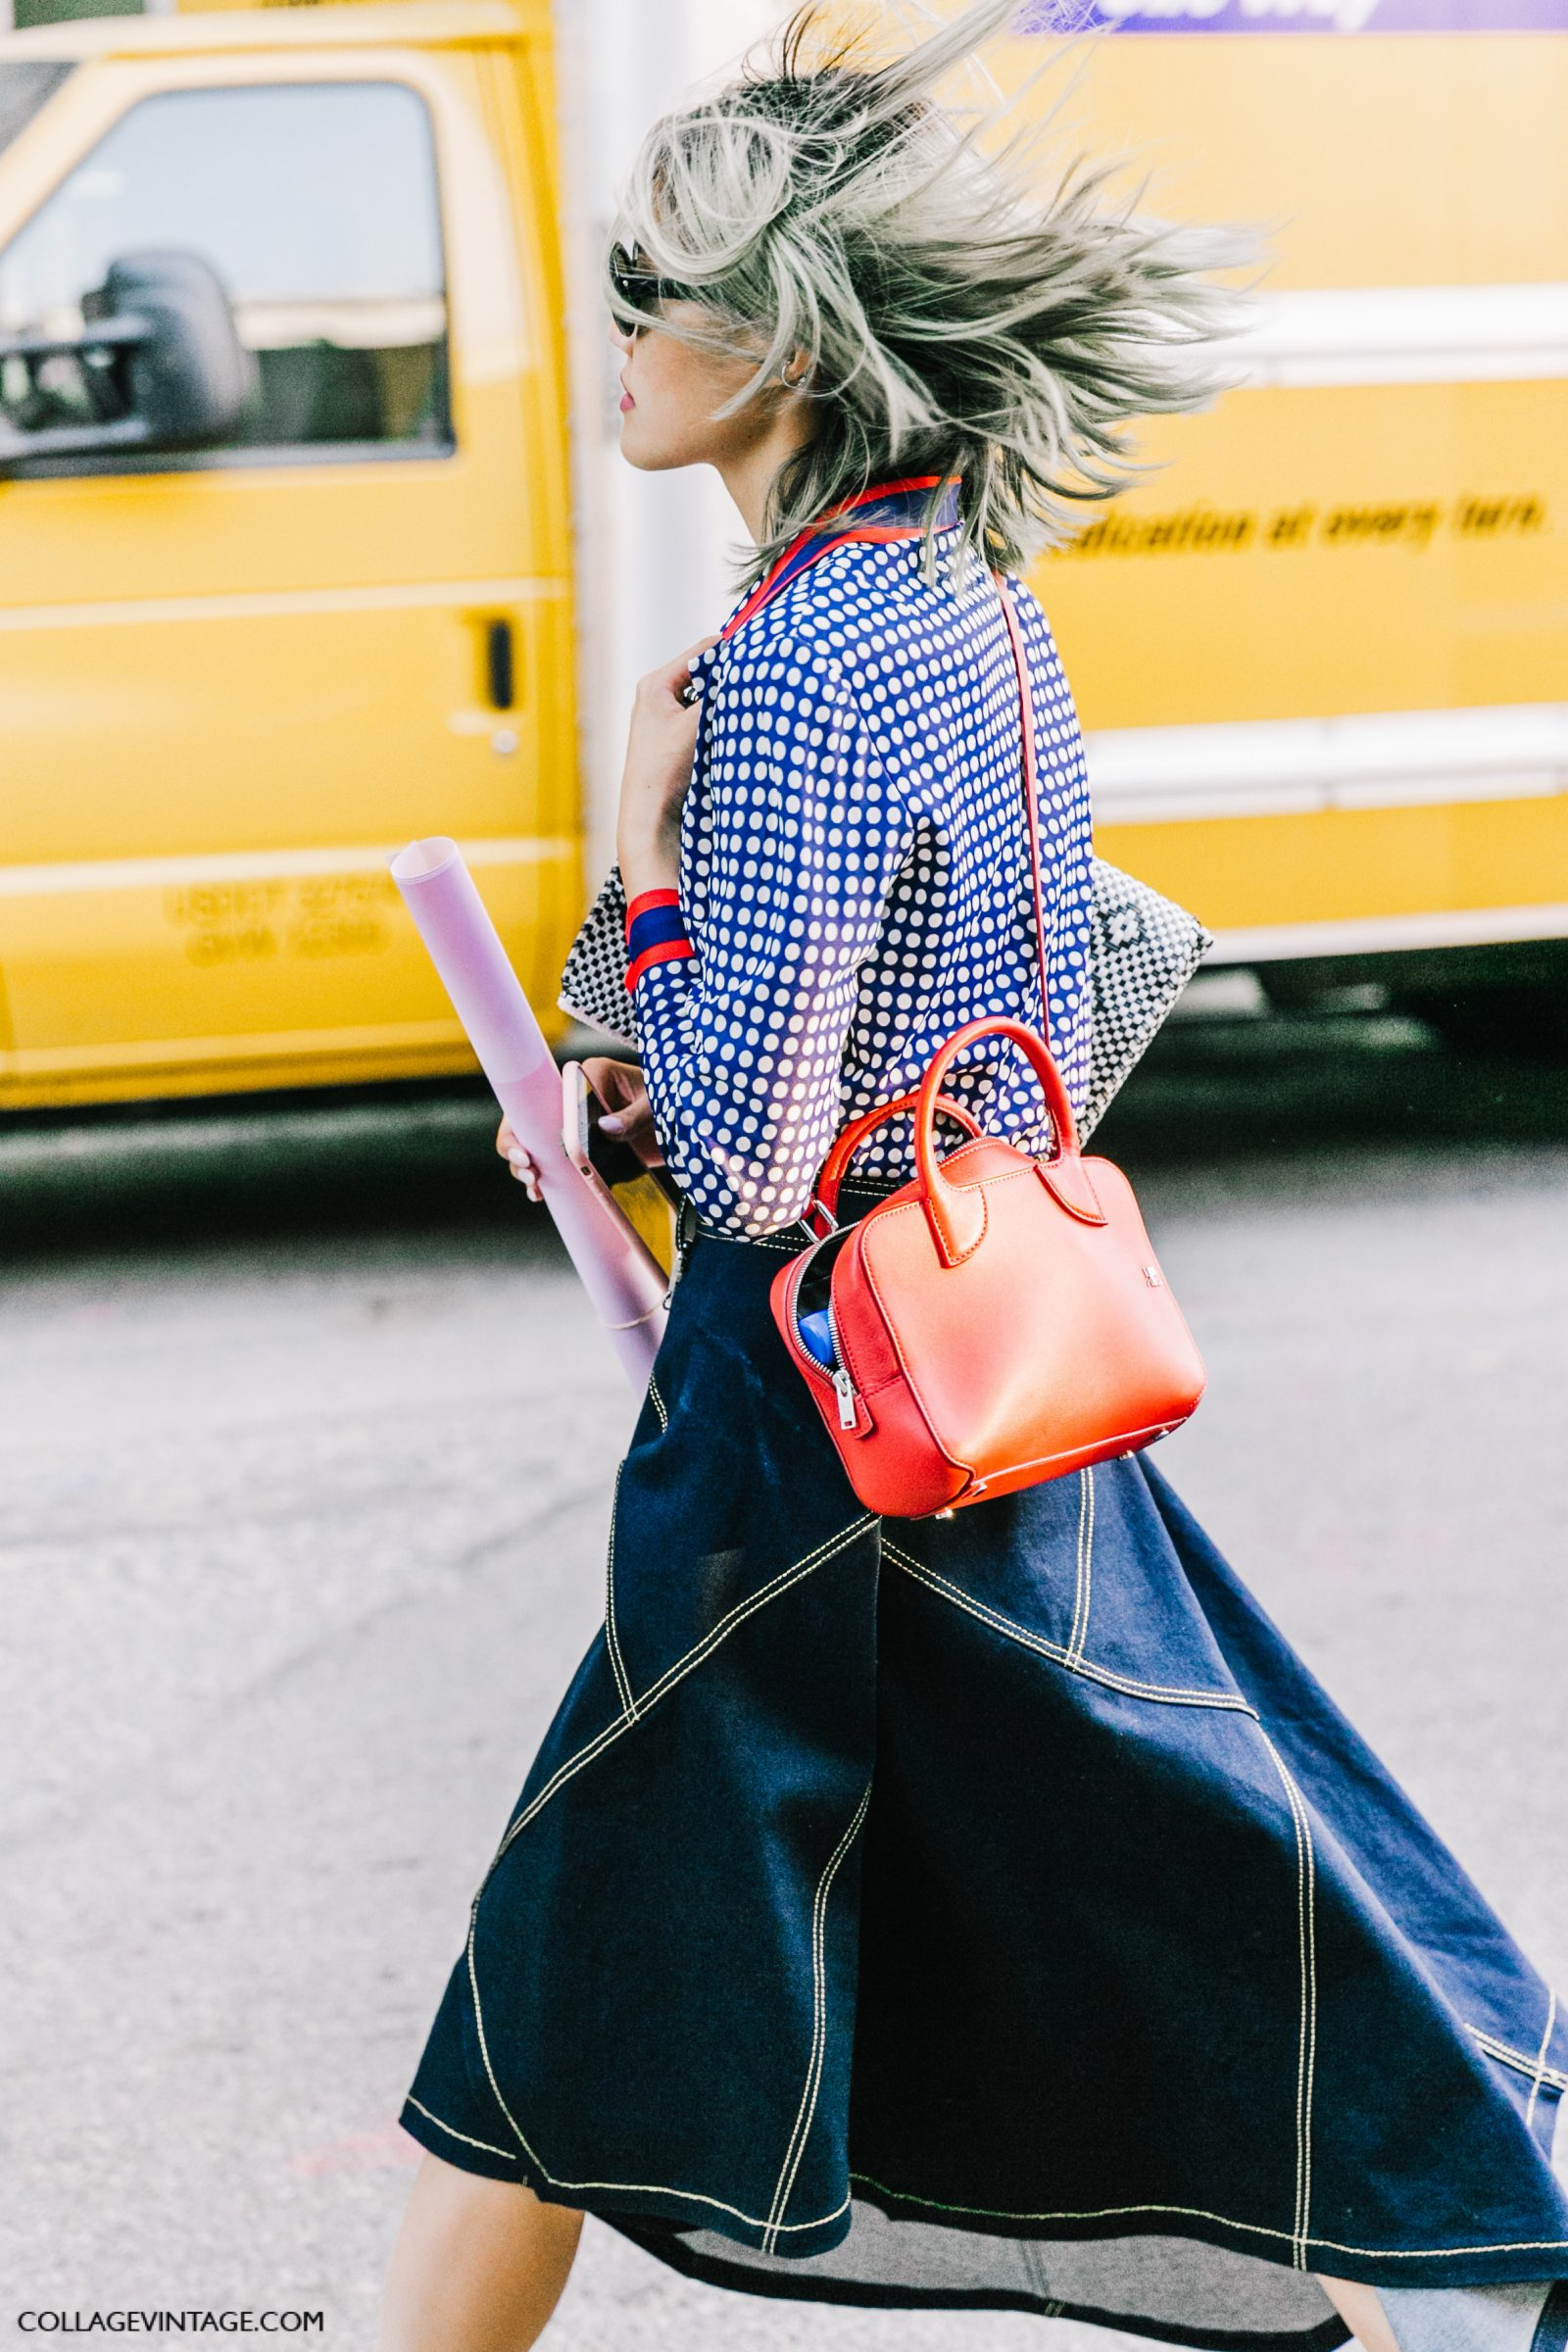 nyfw-new_york_fashion_week_ss17-street_style-outfits-collage_vintage-vintage-mansur_gavriel-rodarte-coach-262